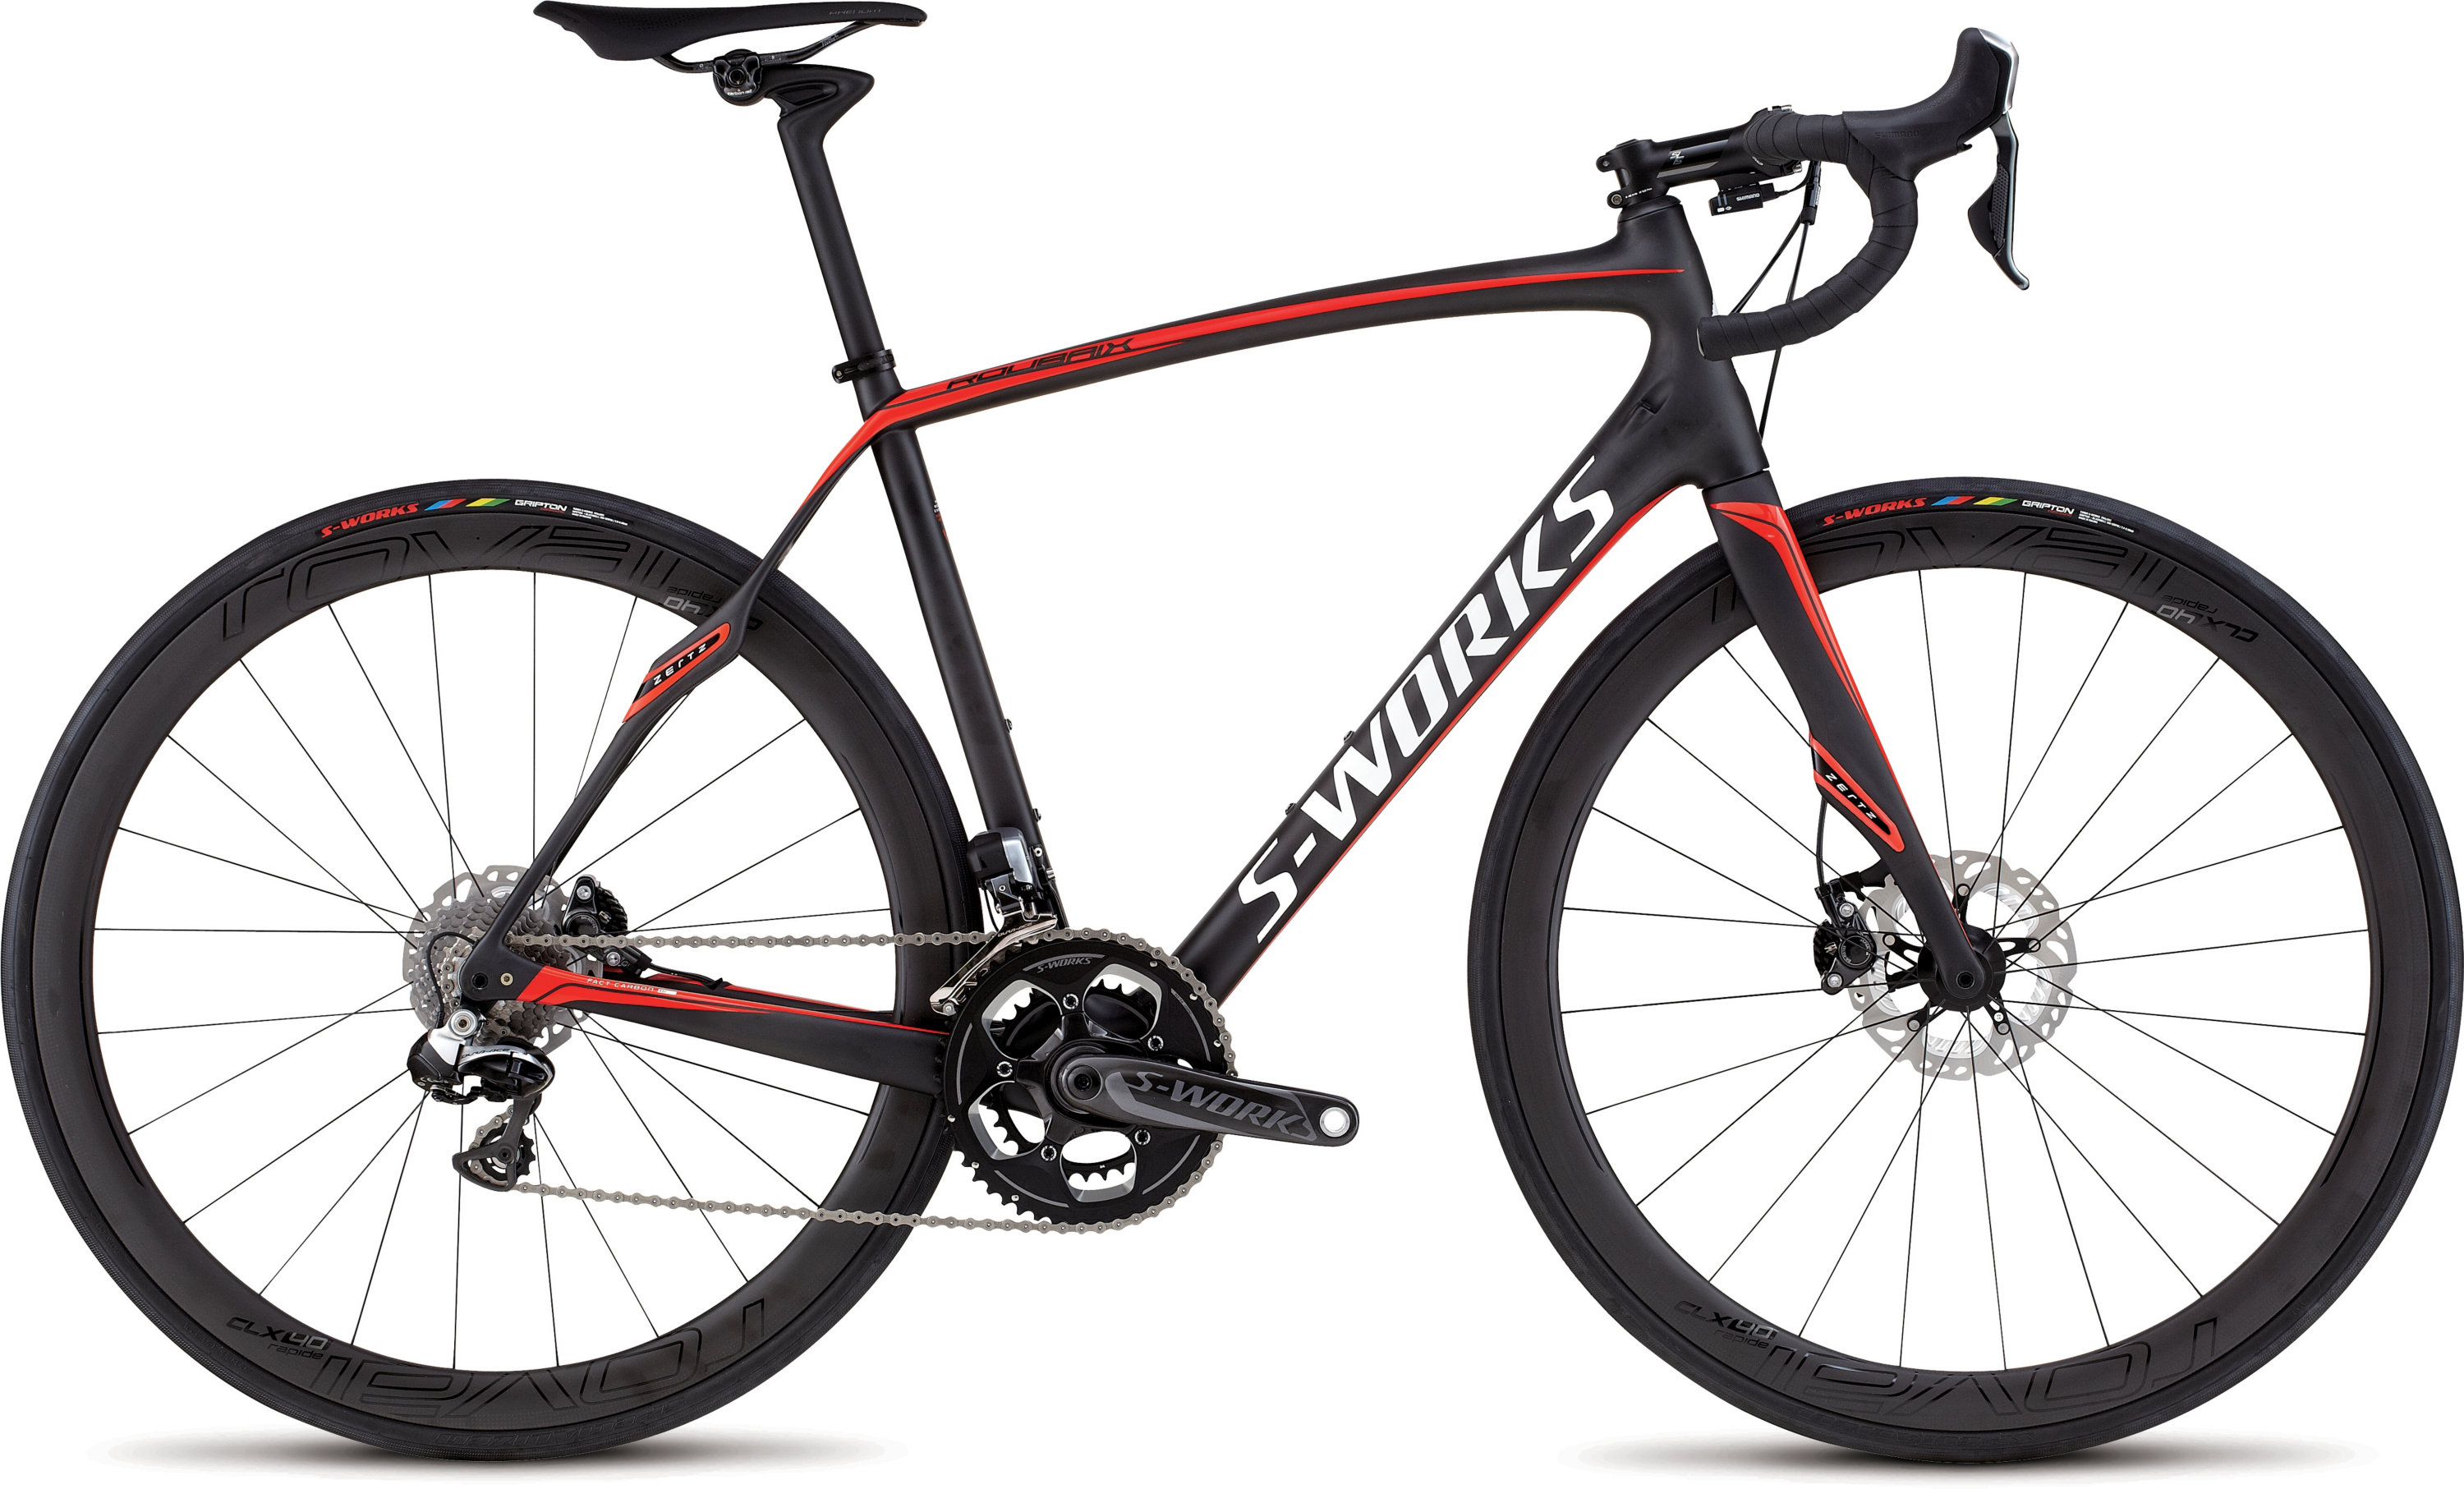 SPECIALIZED SW ROUBAIX SL4 DISC DI2 CARB/RKTRED 49 - Bikedreams & Dustbikes